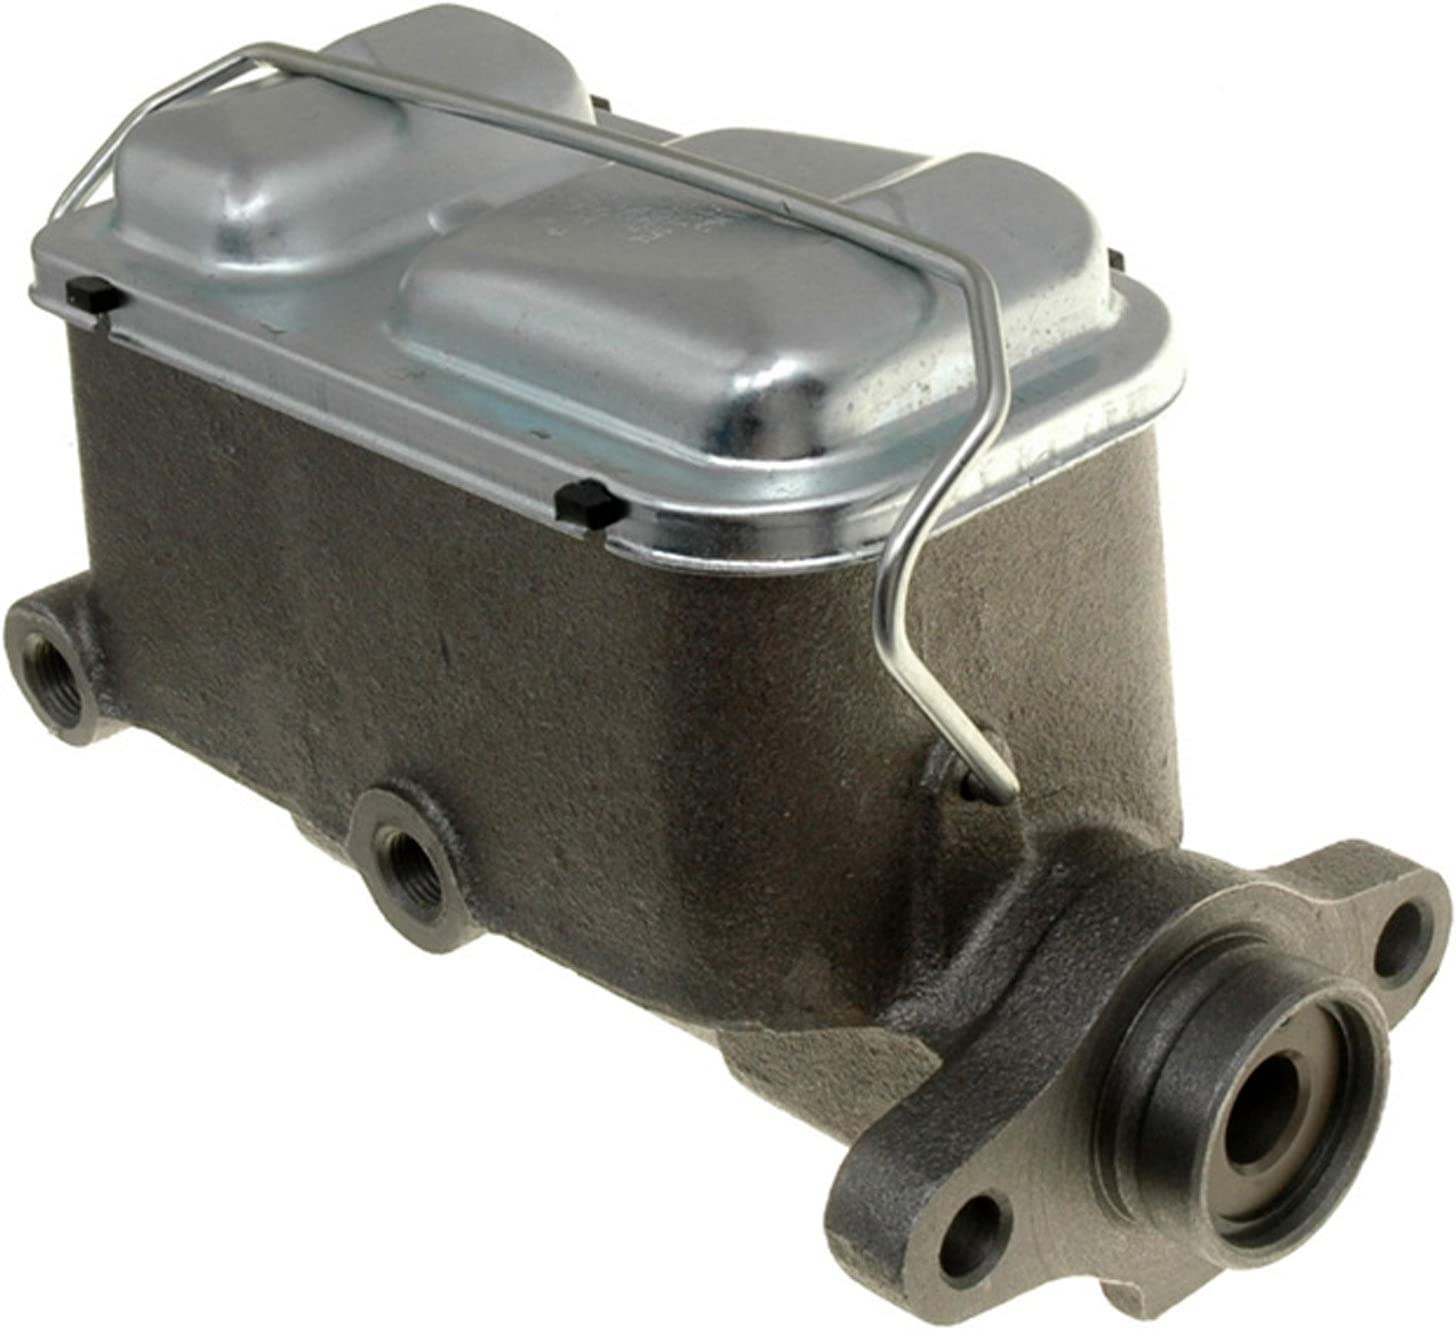 ACDelco Professional Limited price 18M71 Brake Cylinder Master Assembly Ranking integrated 1st place